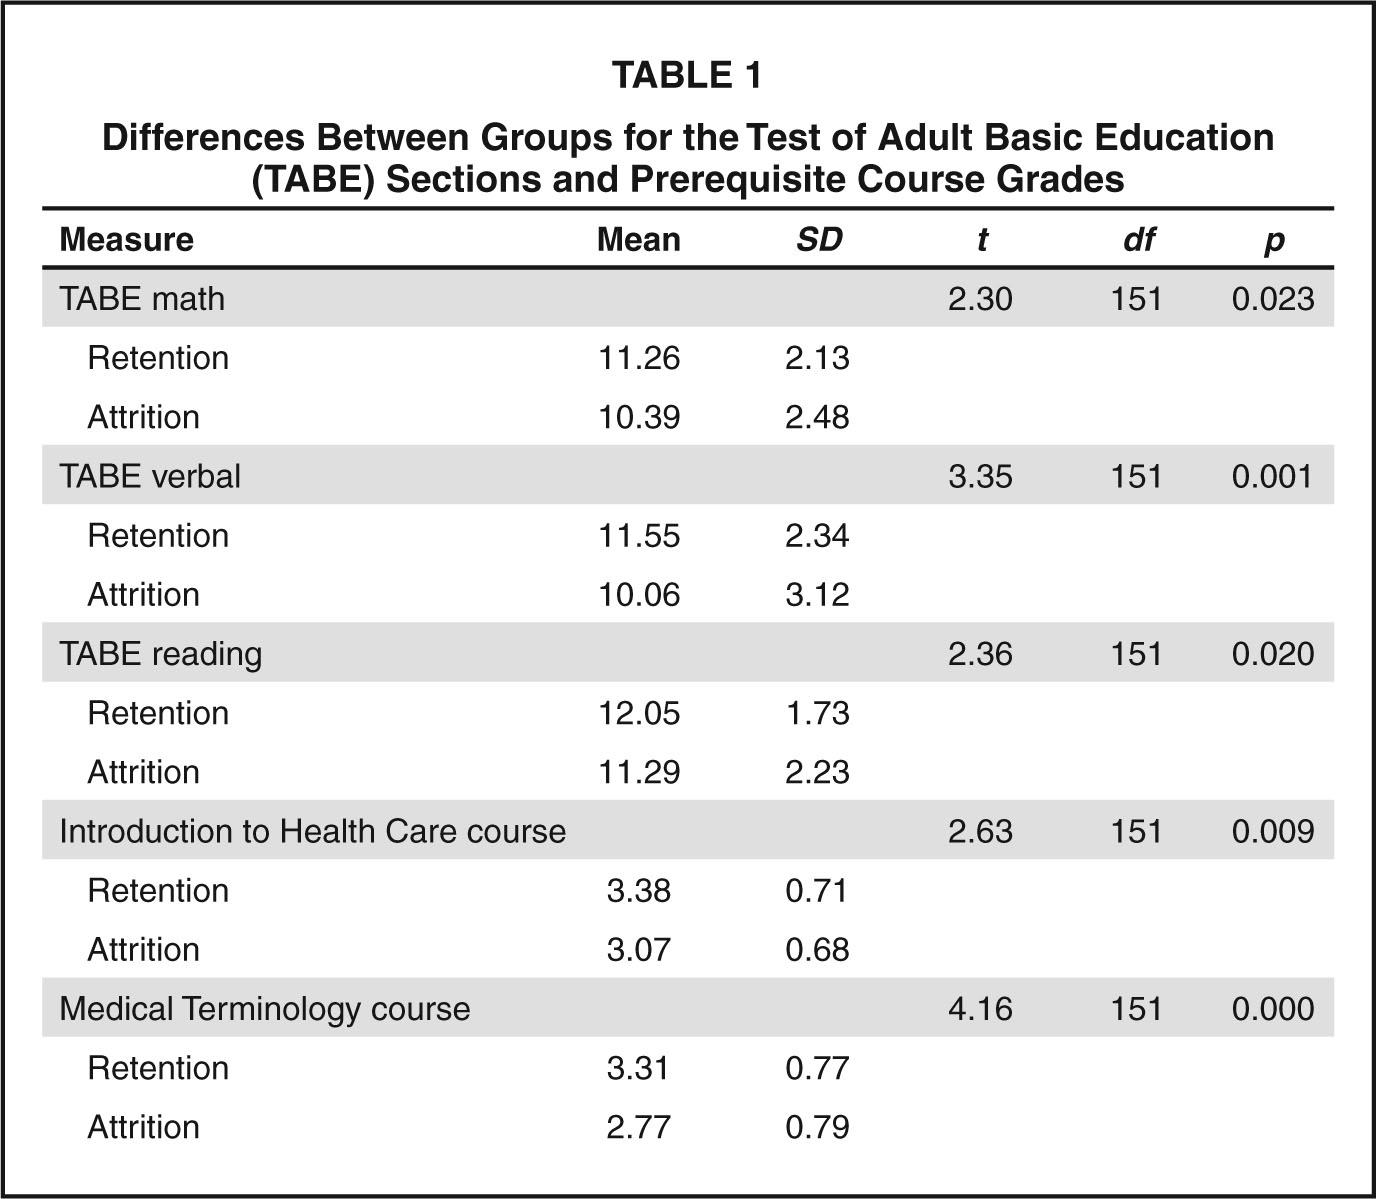 Differences Between Groups for the Test of Adult Basic Education (TABE) Sections and Prerequisite Course Grades